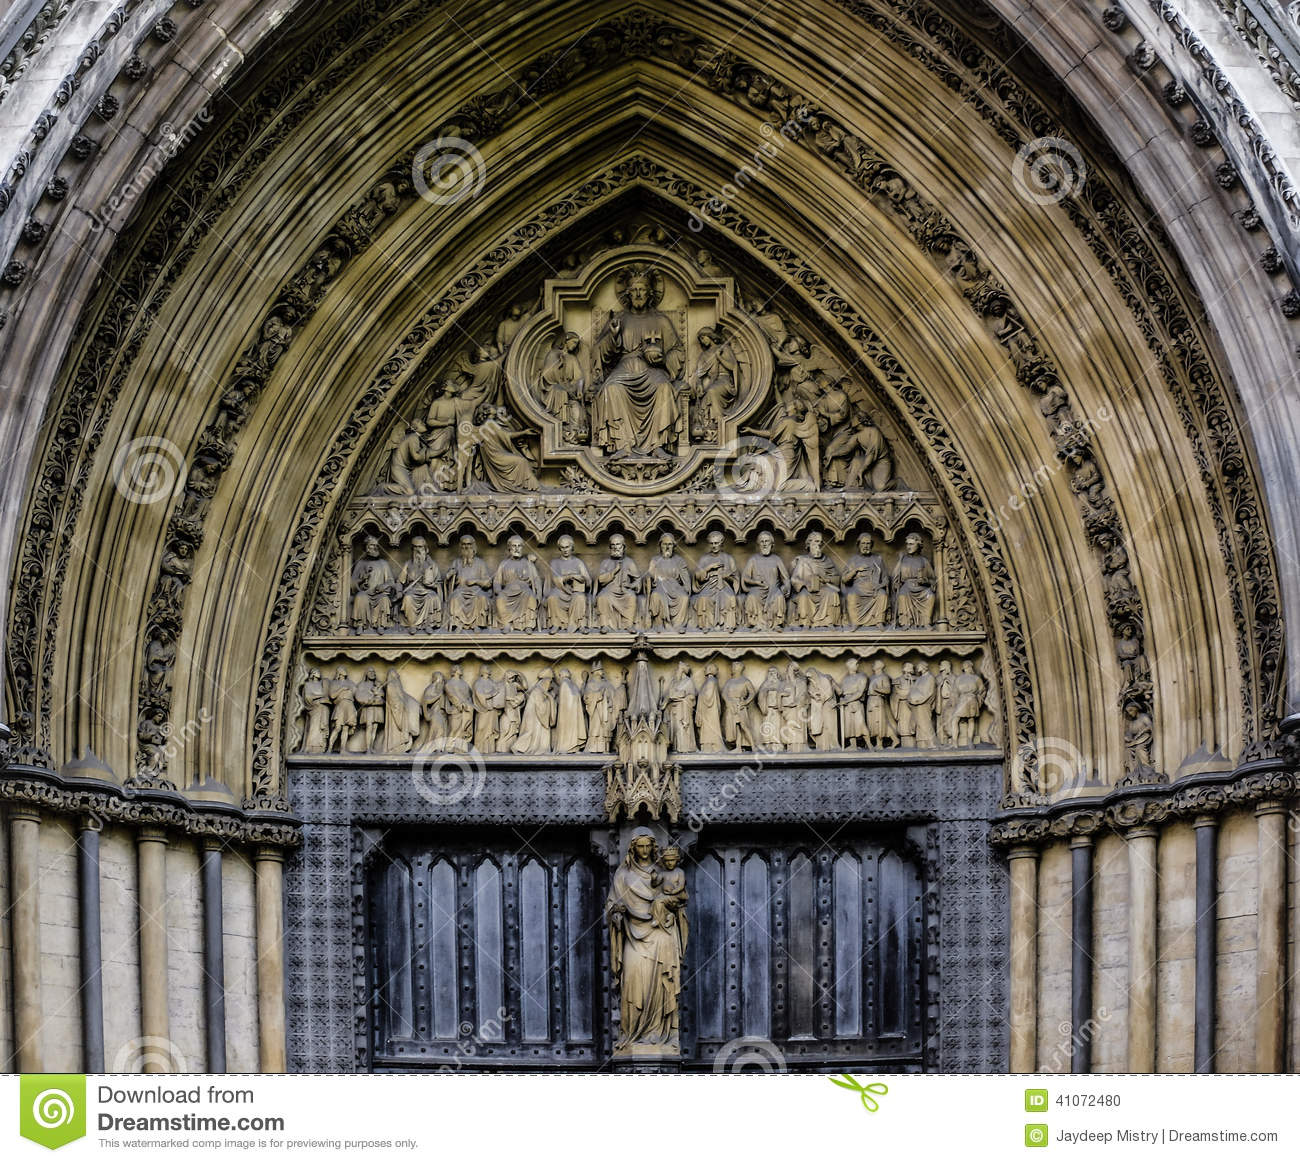 Royalty-Free Stock Photo. Download Westminster Abbey Entrance Door ... & Westminster Abbey Entrance Door Stock Photo - Image: 41072480 Pezcame.Com